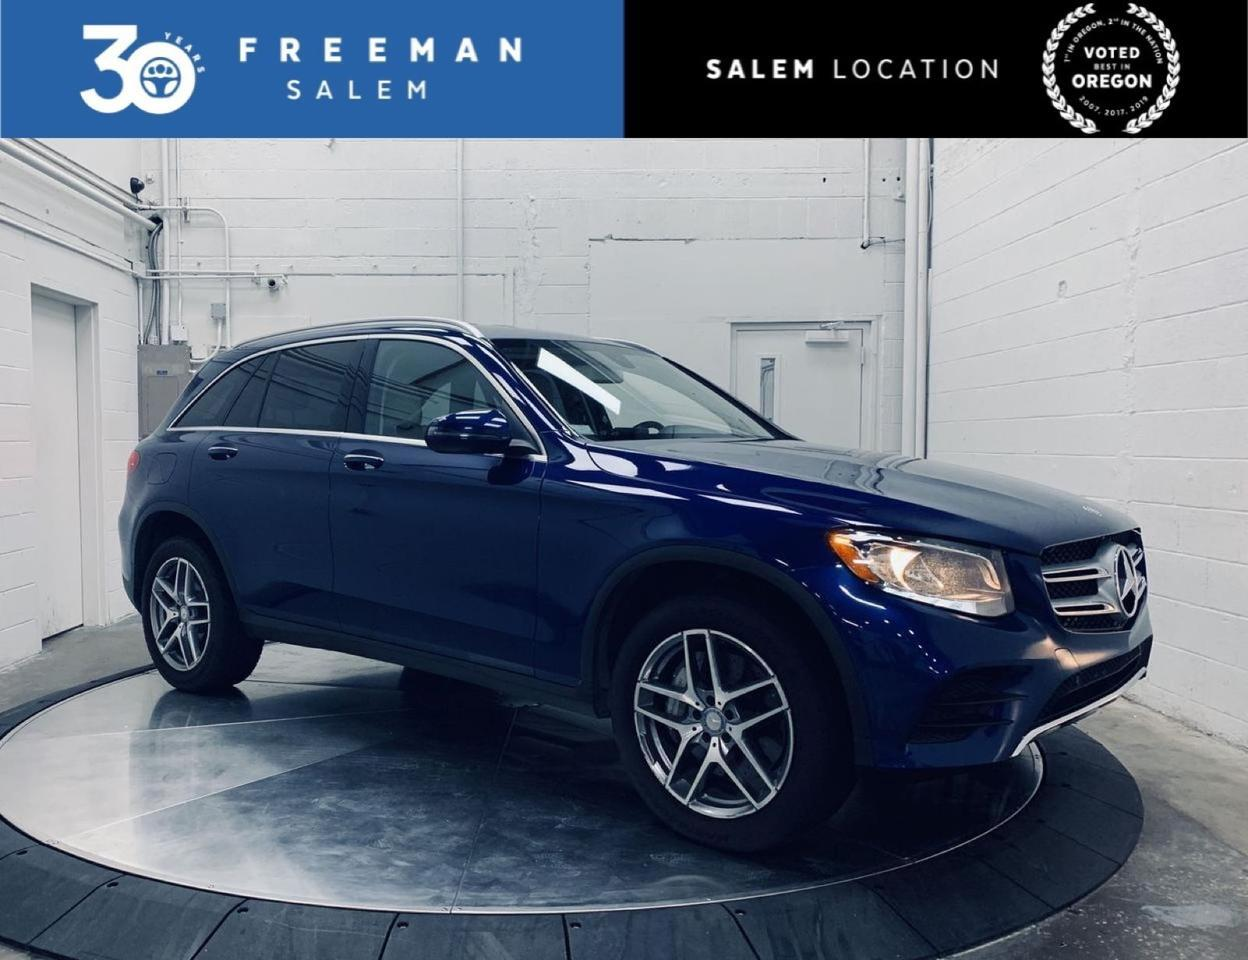 2017 Mercedes-Benz GLC 300 4MATIC Sport Package Blind Spot Assist Salem OR